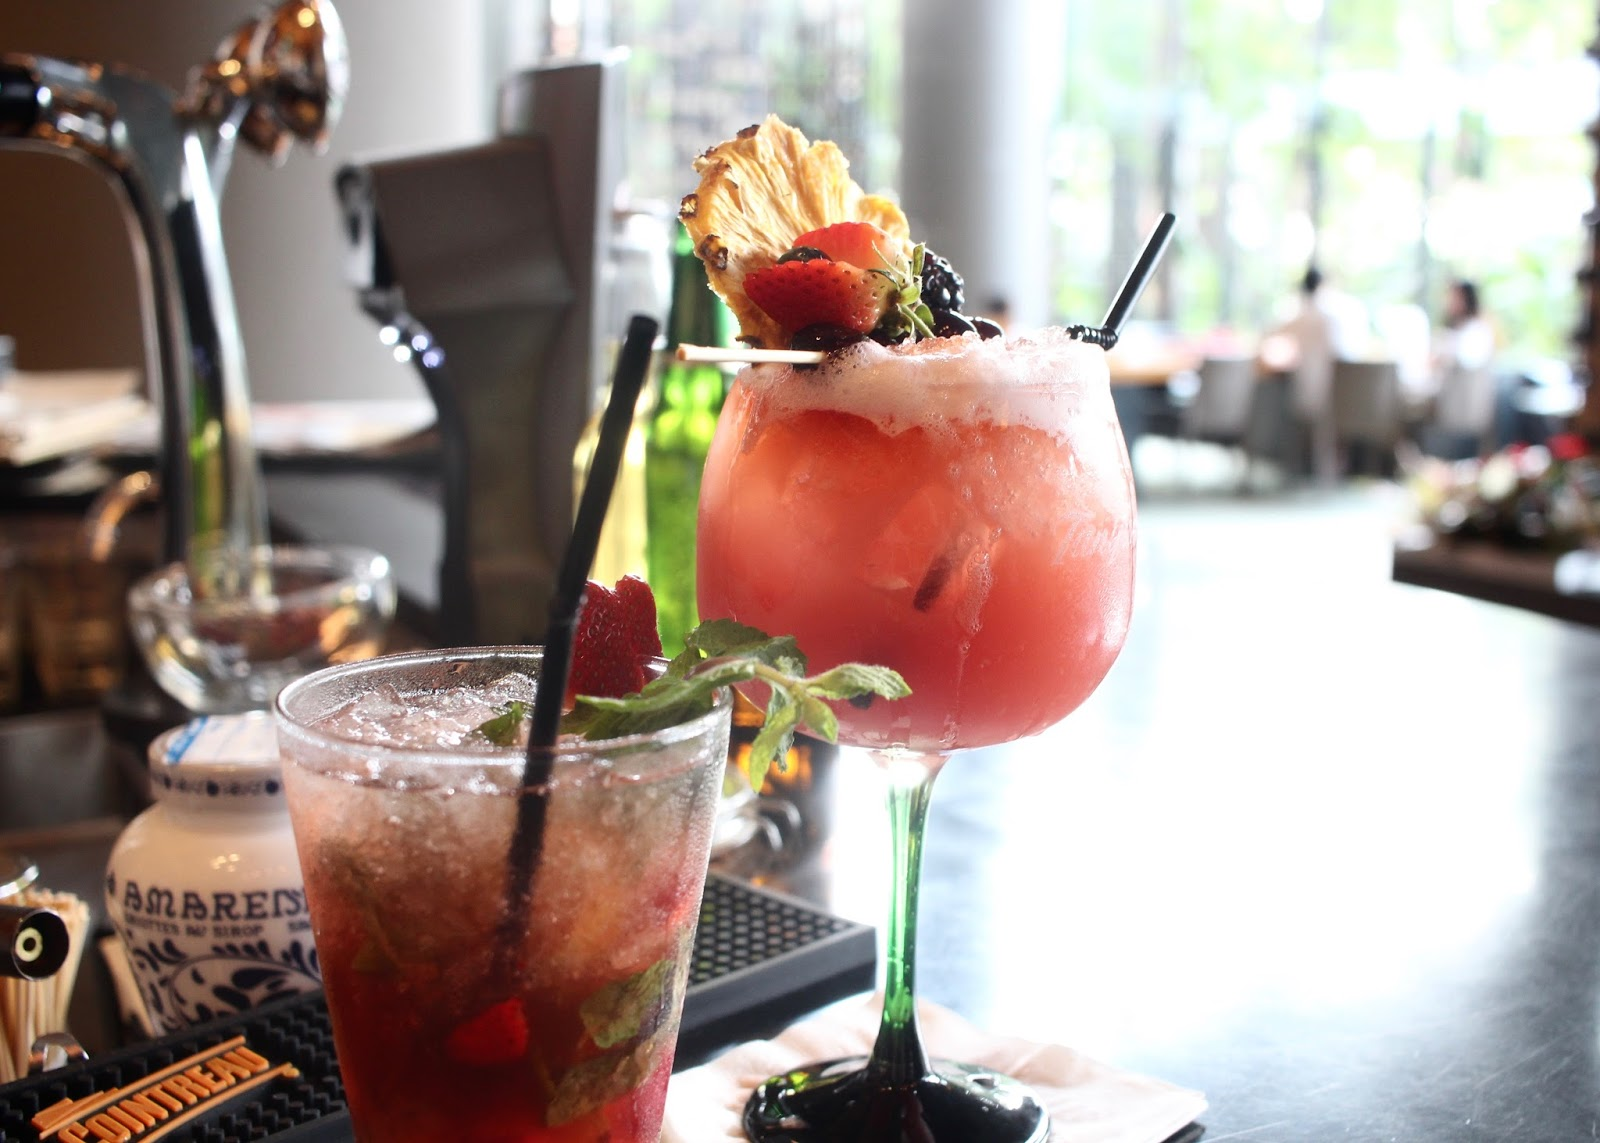 calvin klein shoes singapore sling recipe drinks